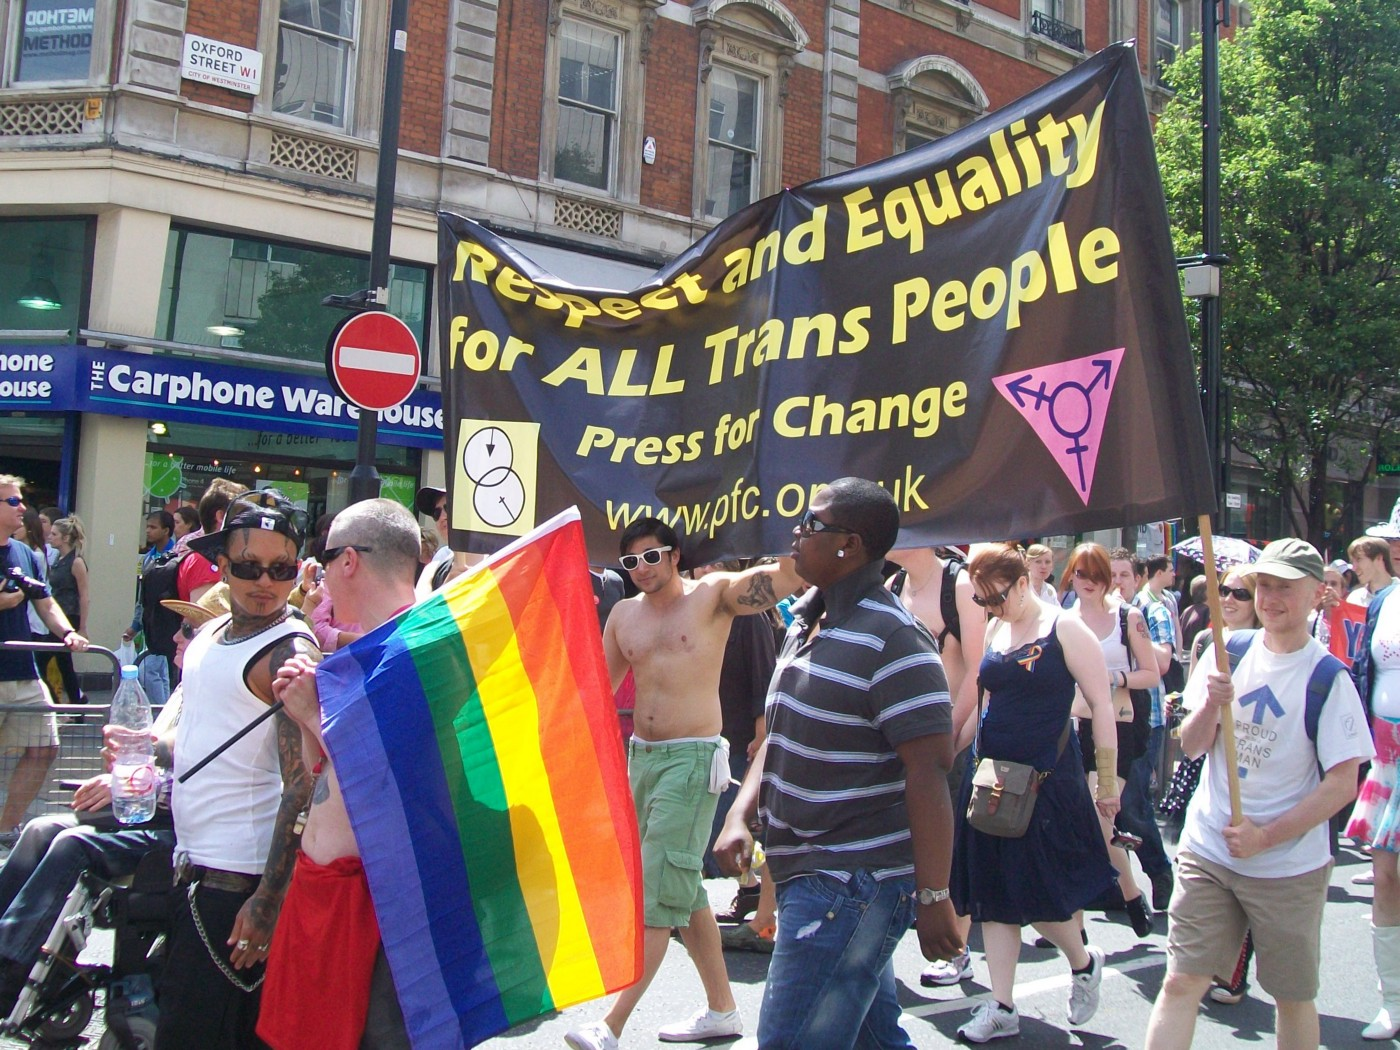 An LGBT+ Pride march in London, 2010. Marchers are holding up a banner by the campaign group Press for Change that reads: 'Respect and Equality for All Trans People.'